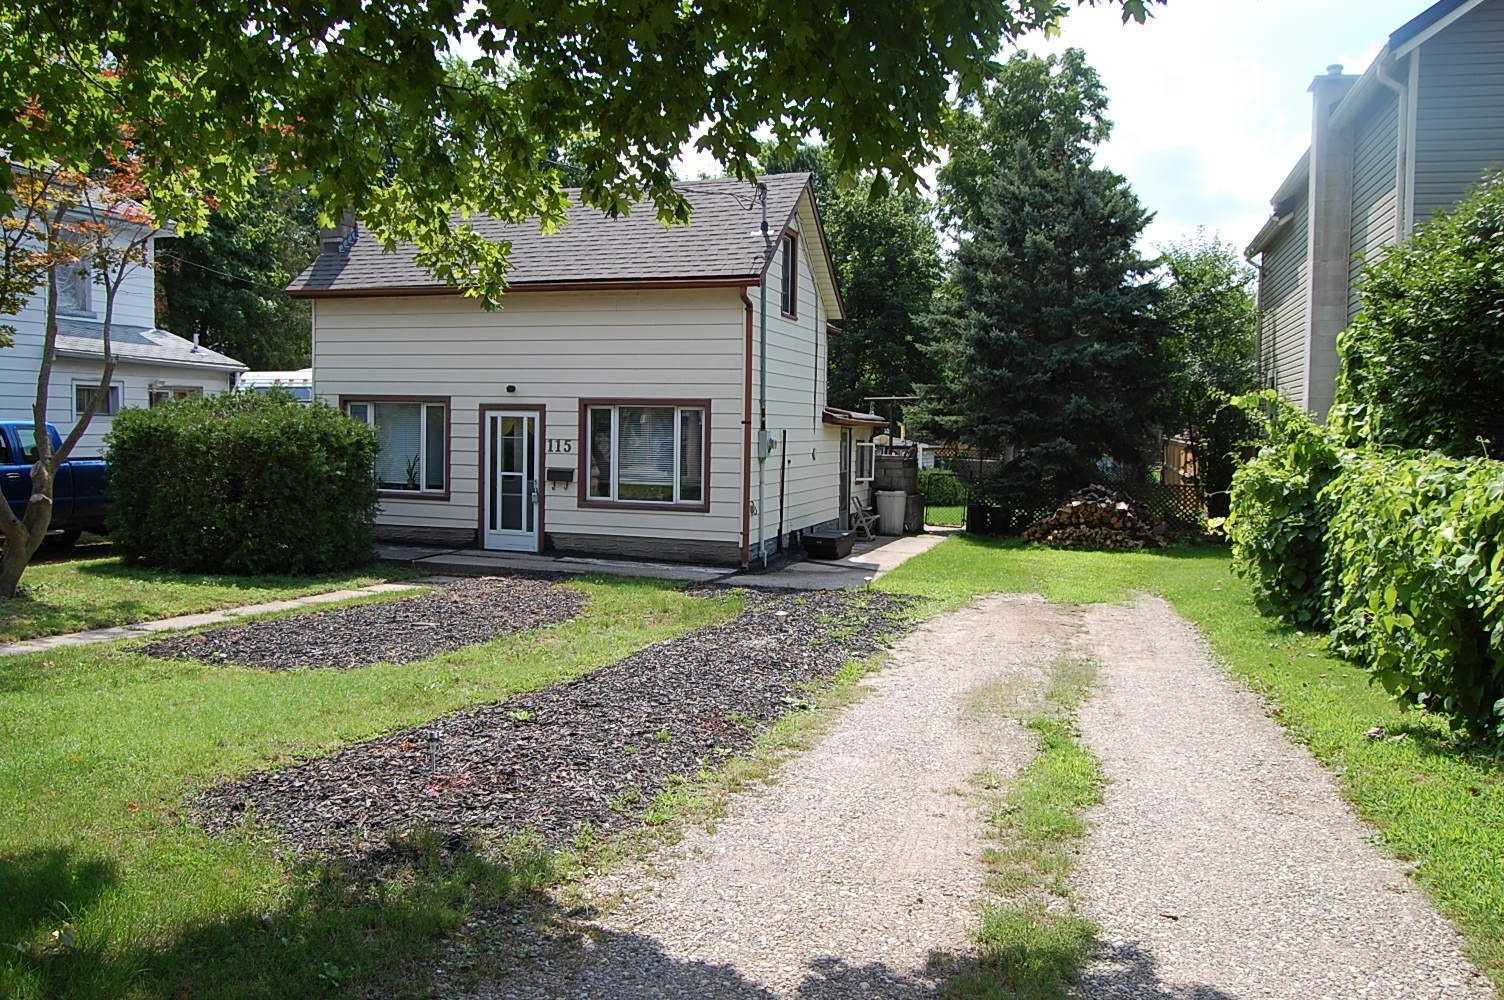 Great Starter Home On A Large Treed Lot With Fenced Backyard. Home Is Within Walking Distance To Downtown , Close To All Amenities And Bus Route .Home Features Eat  In Kitchen With W/O To Yard,  Living Room With Gas Fireplace, Dining Room, 3 Bedrooms, Back Room With  Wood Stove And Laundry With W/O To Yard. Updates Include Vinyl Windows, Mid Efficiency Gas Furnace.  Roof Re Shingled (2020)